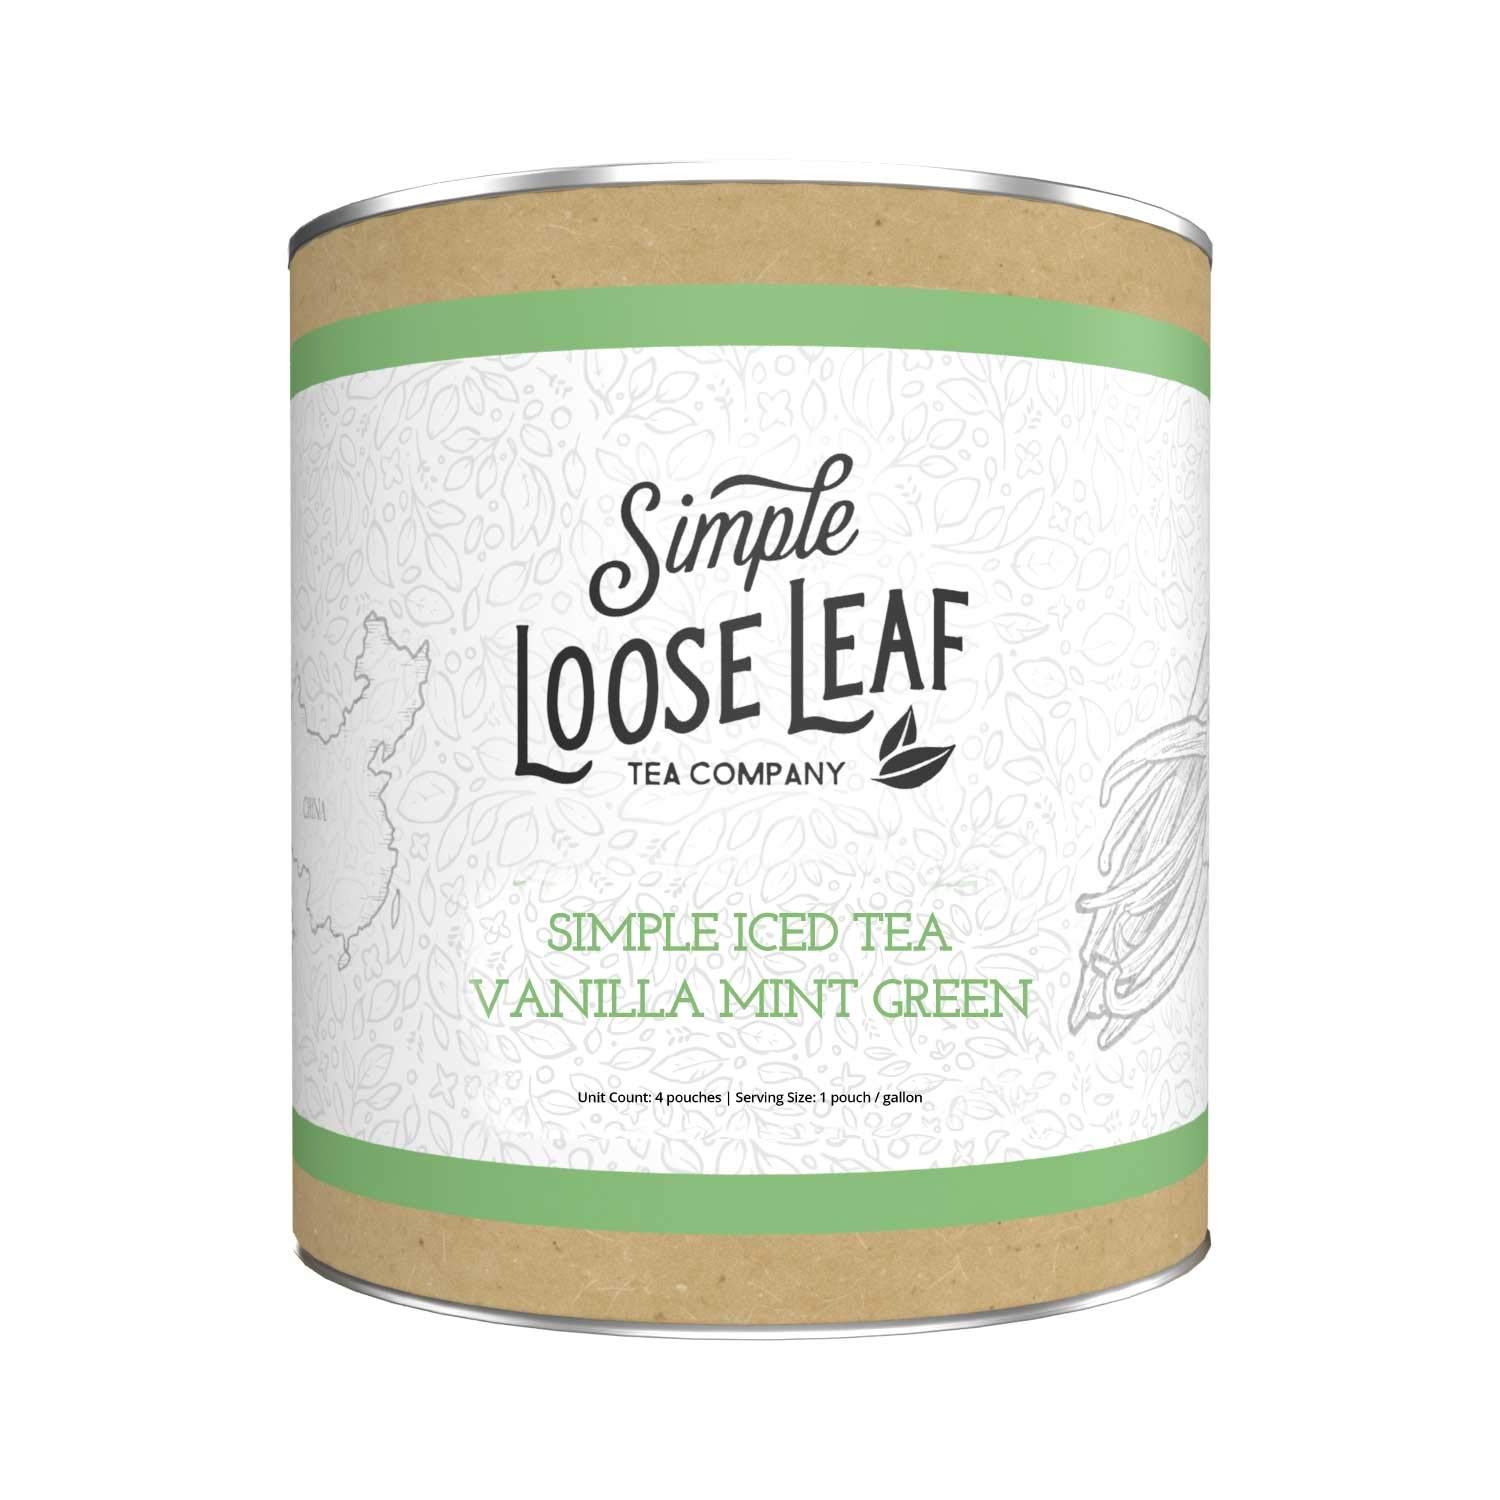 Simple Loose Leaf - Vanilla Mint Green Iced Tea (4 pk) - Premium Brewable Bagged Iced Green Tea - Clean and Fresh - High Caffeine - 4 to 6 Gallons Brewed